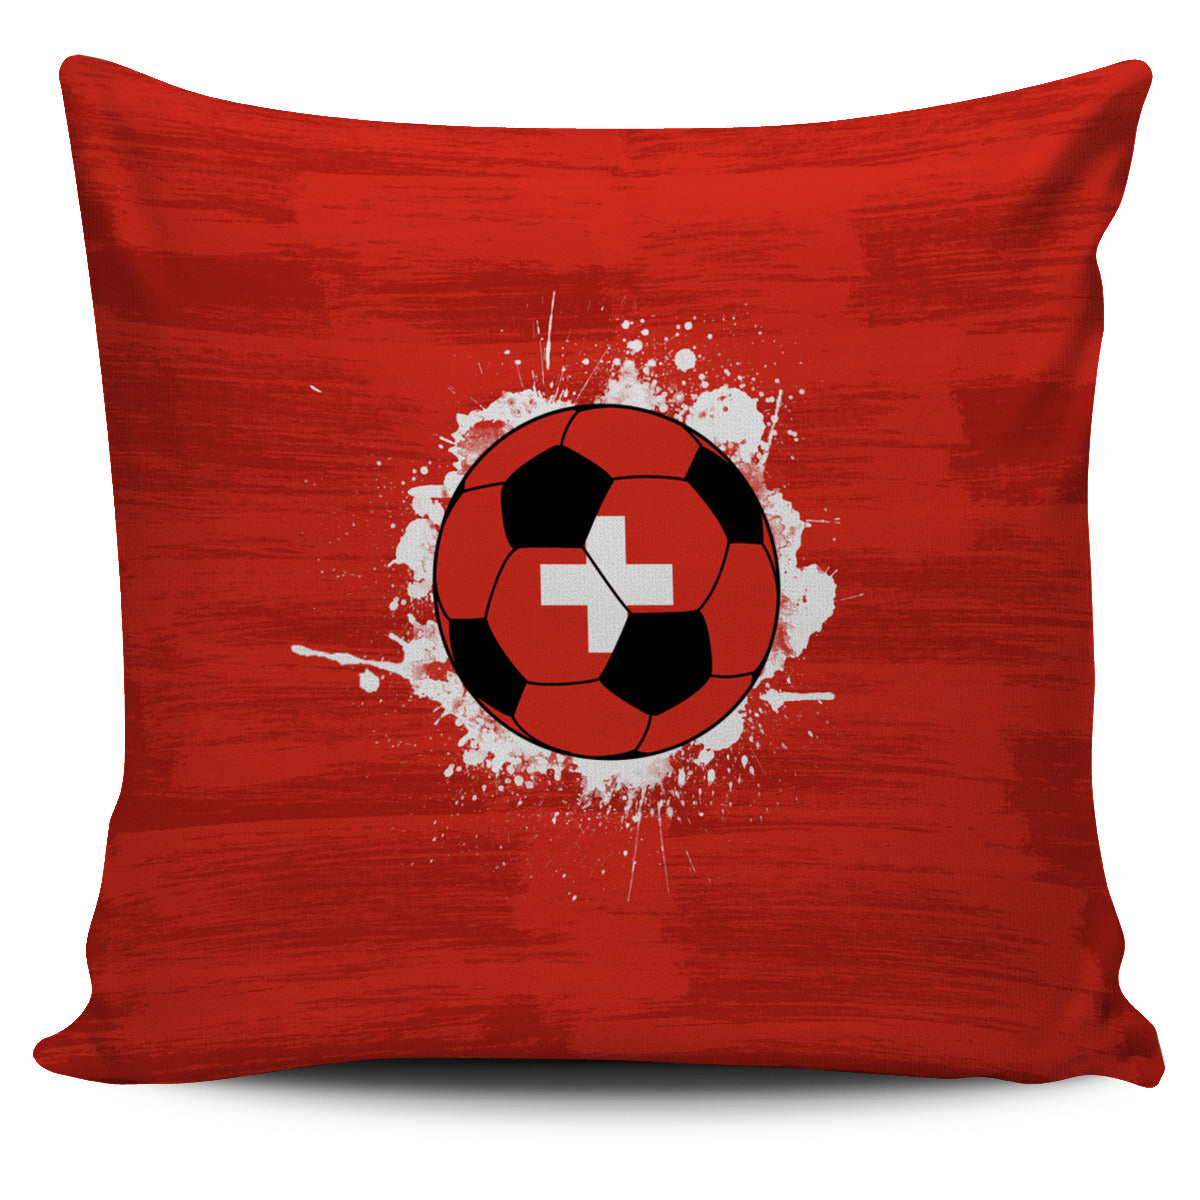 Switzerland Soccer Pillow Cover Collection